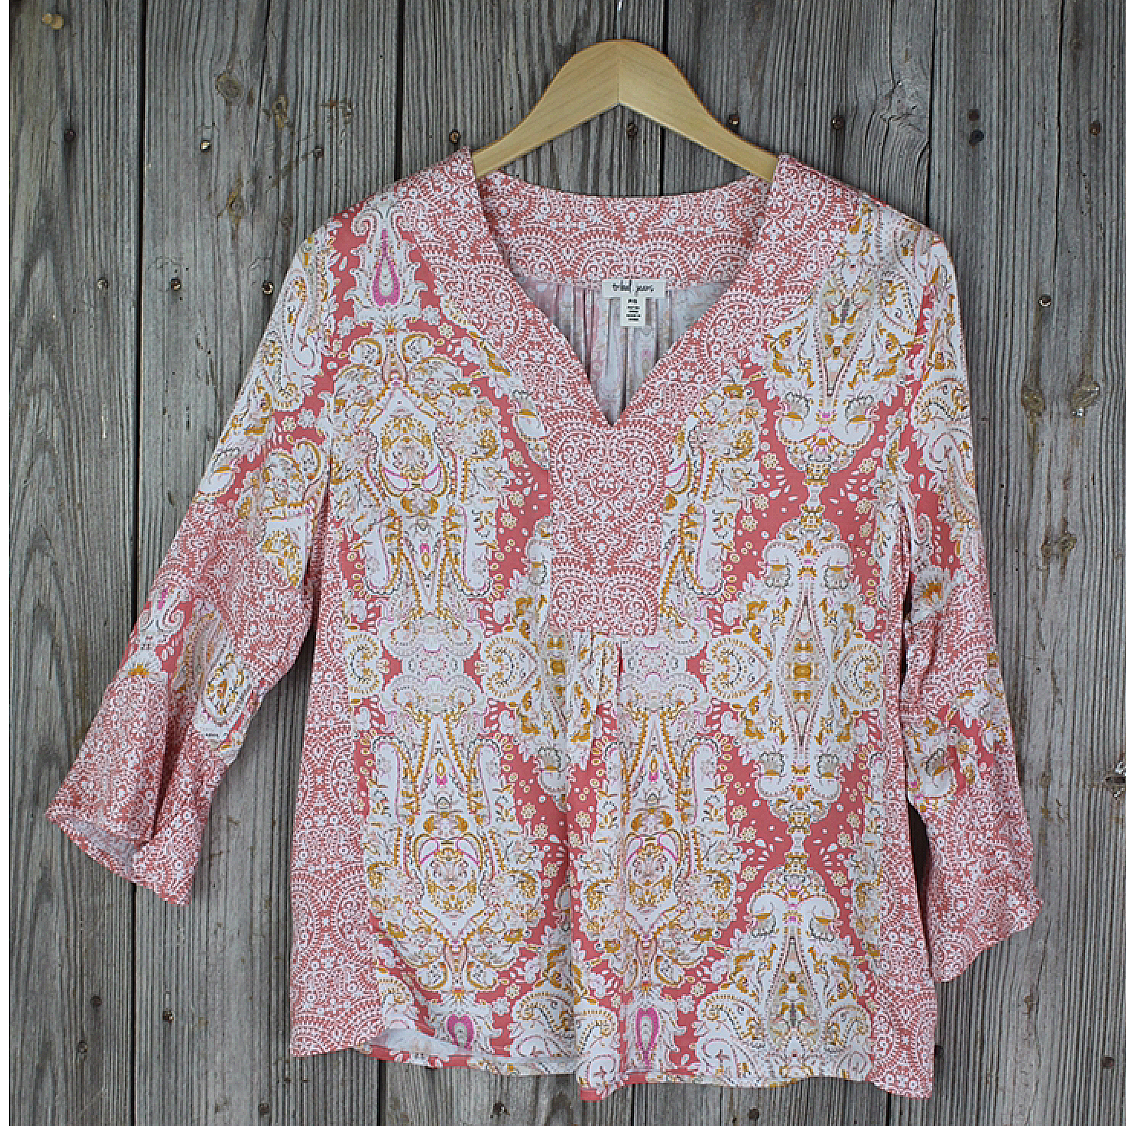 Ladies 3/4 Sleeve Top with Ruffle Sleeve from Tribal